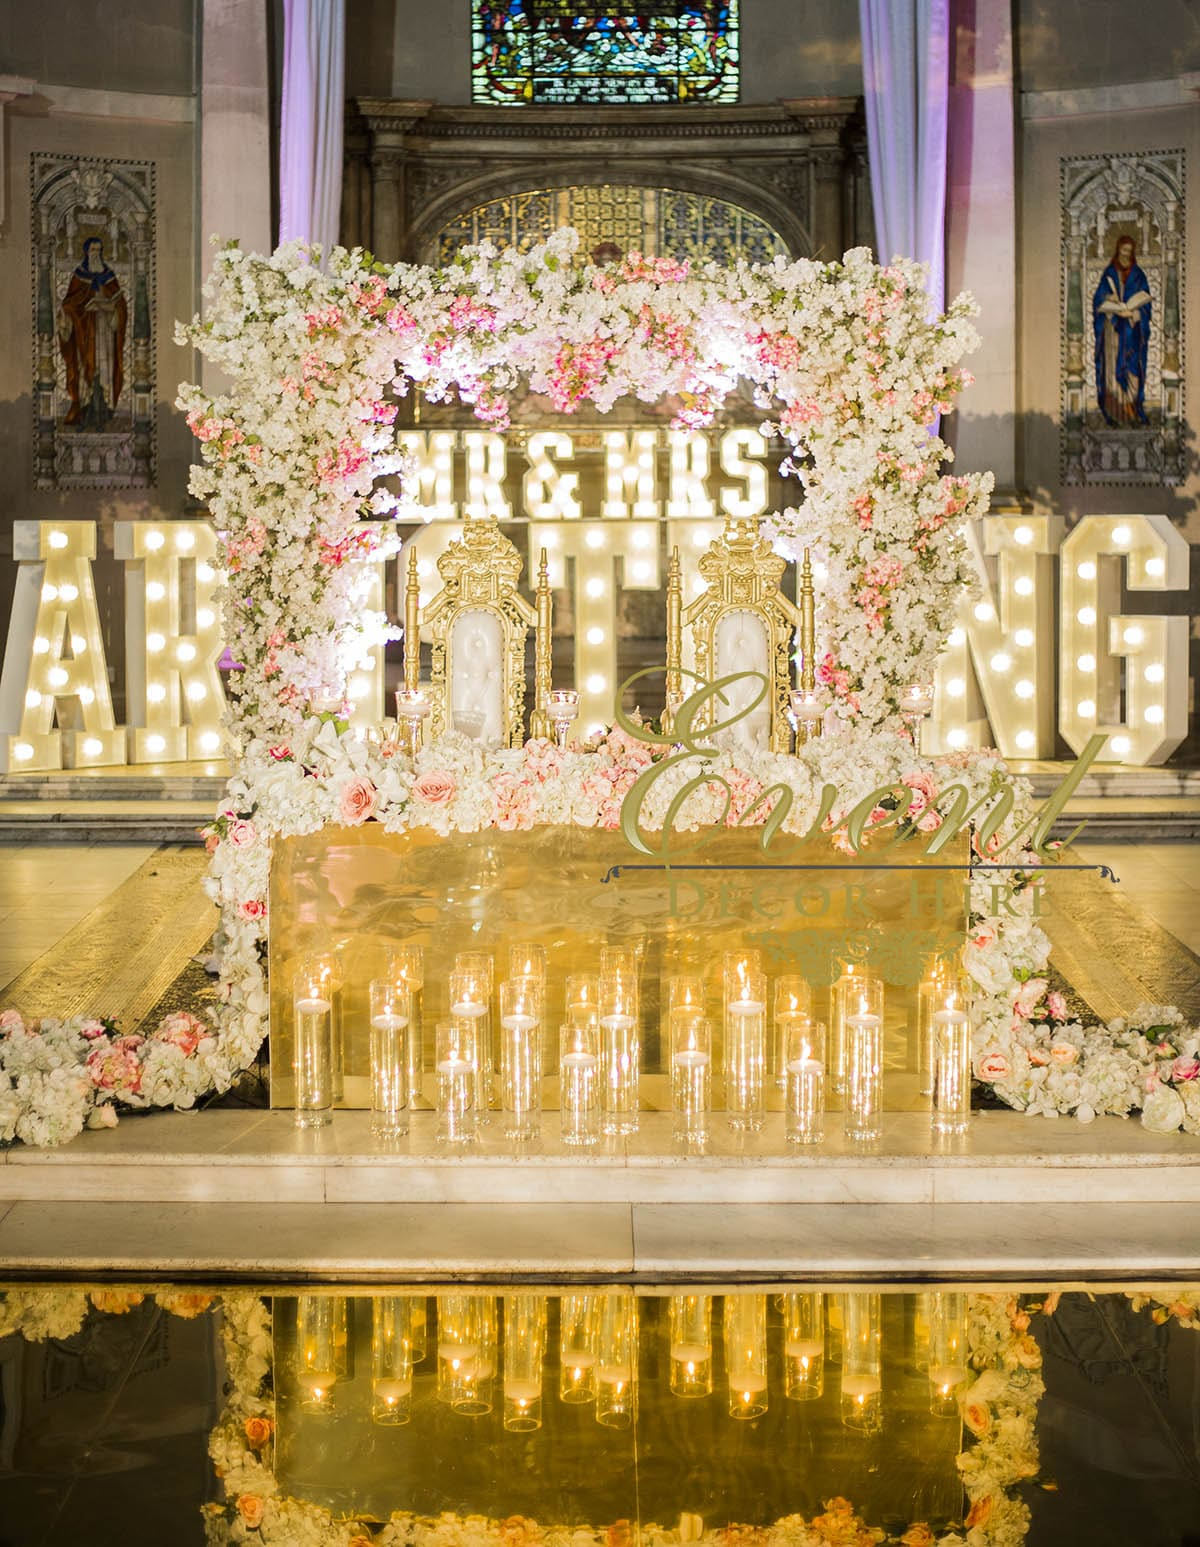 blossom arch wedding design backdrop